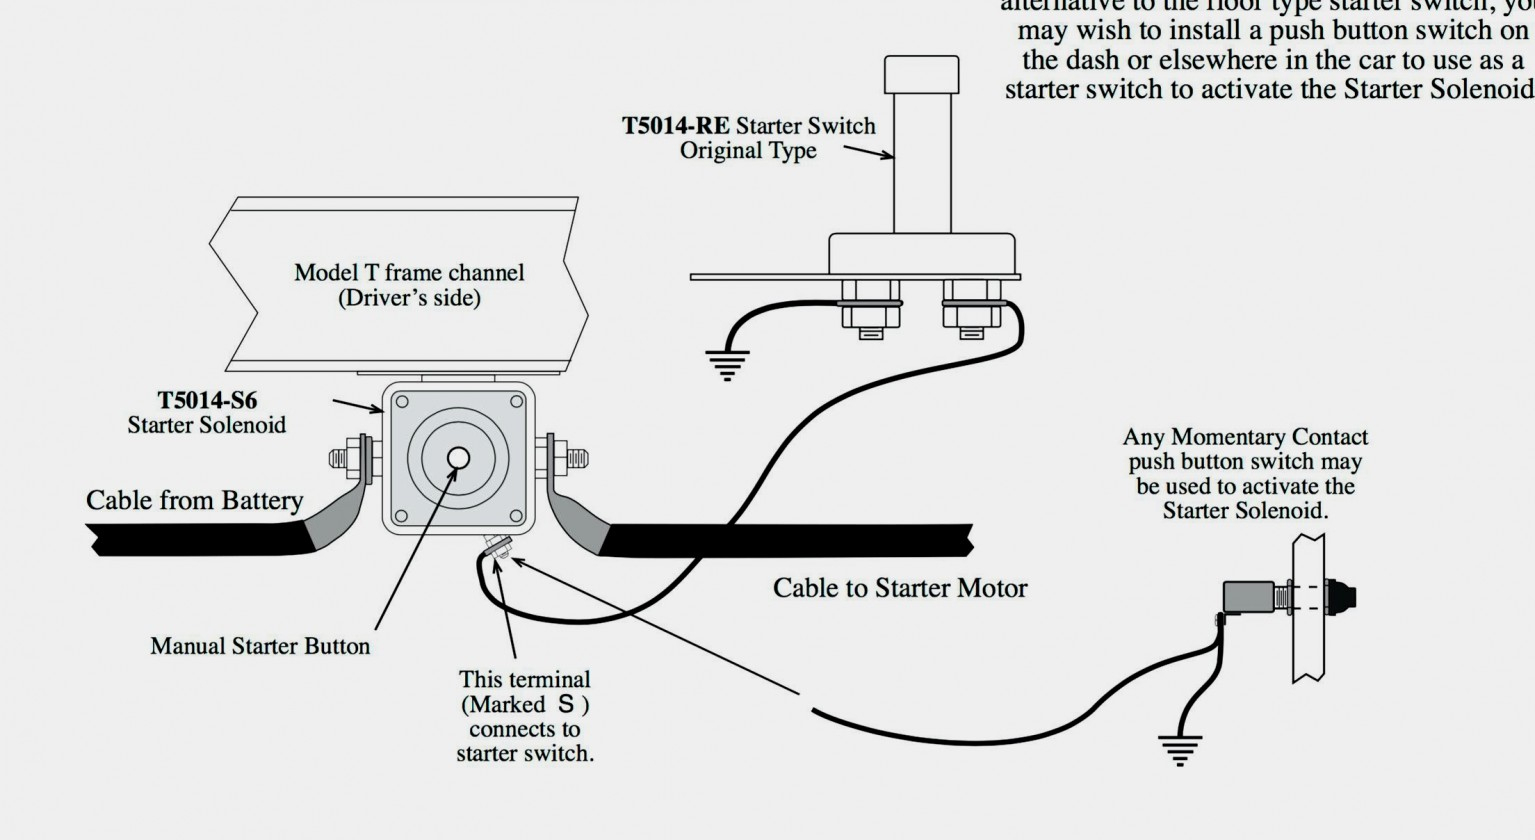 Gm Starter Motor Wiring Diagram from 2020cadillac.com